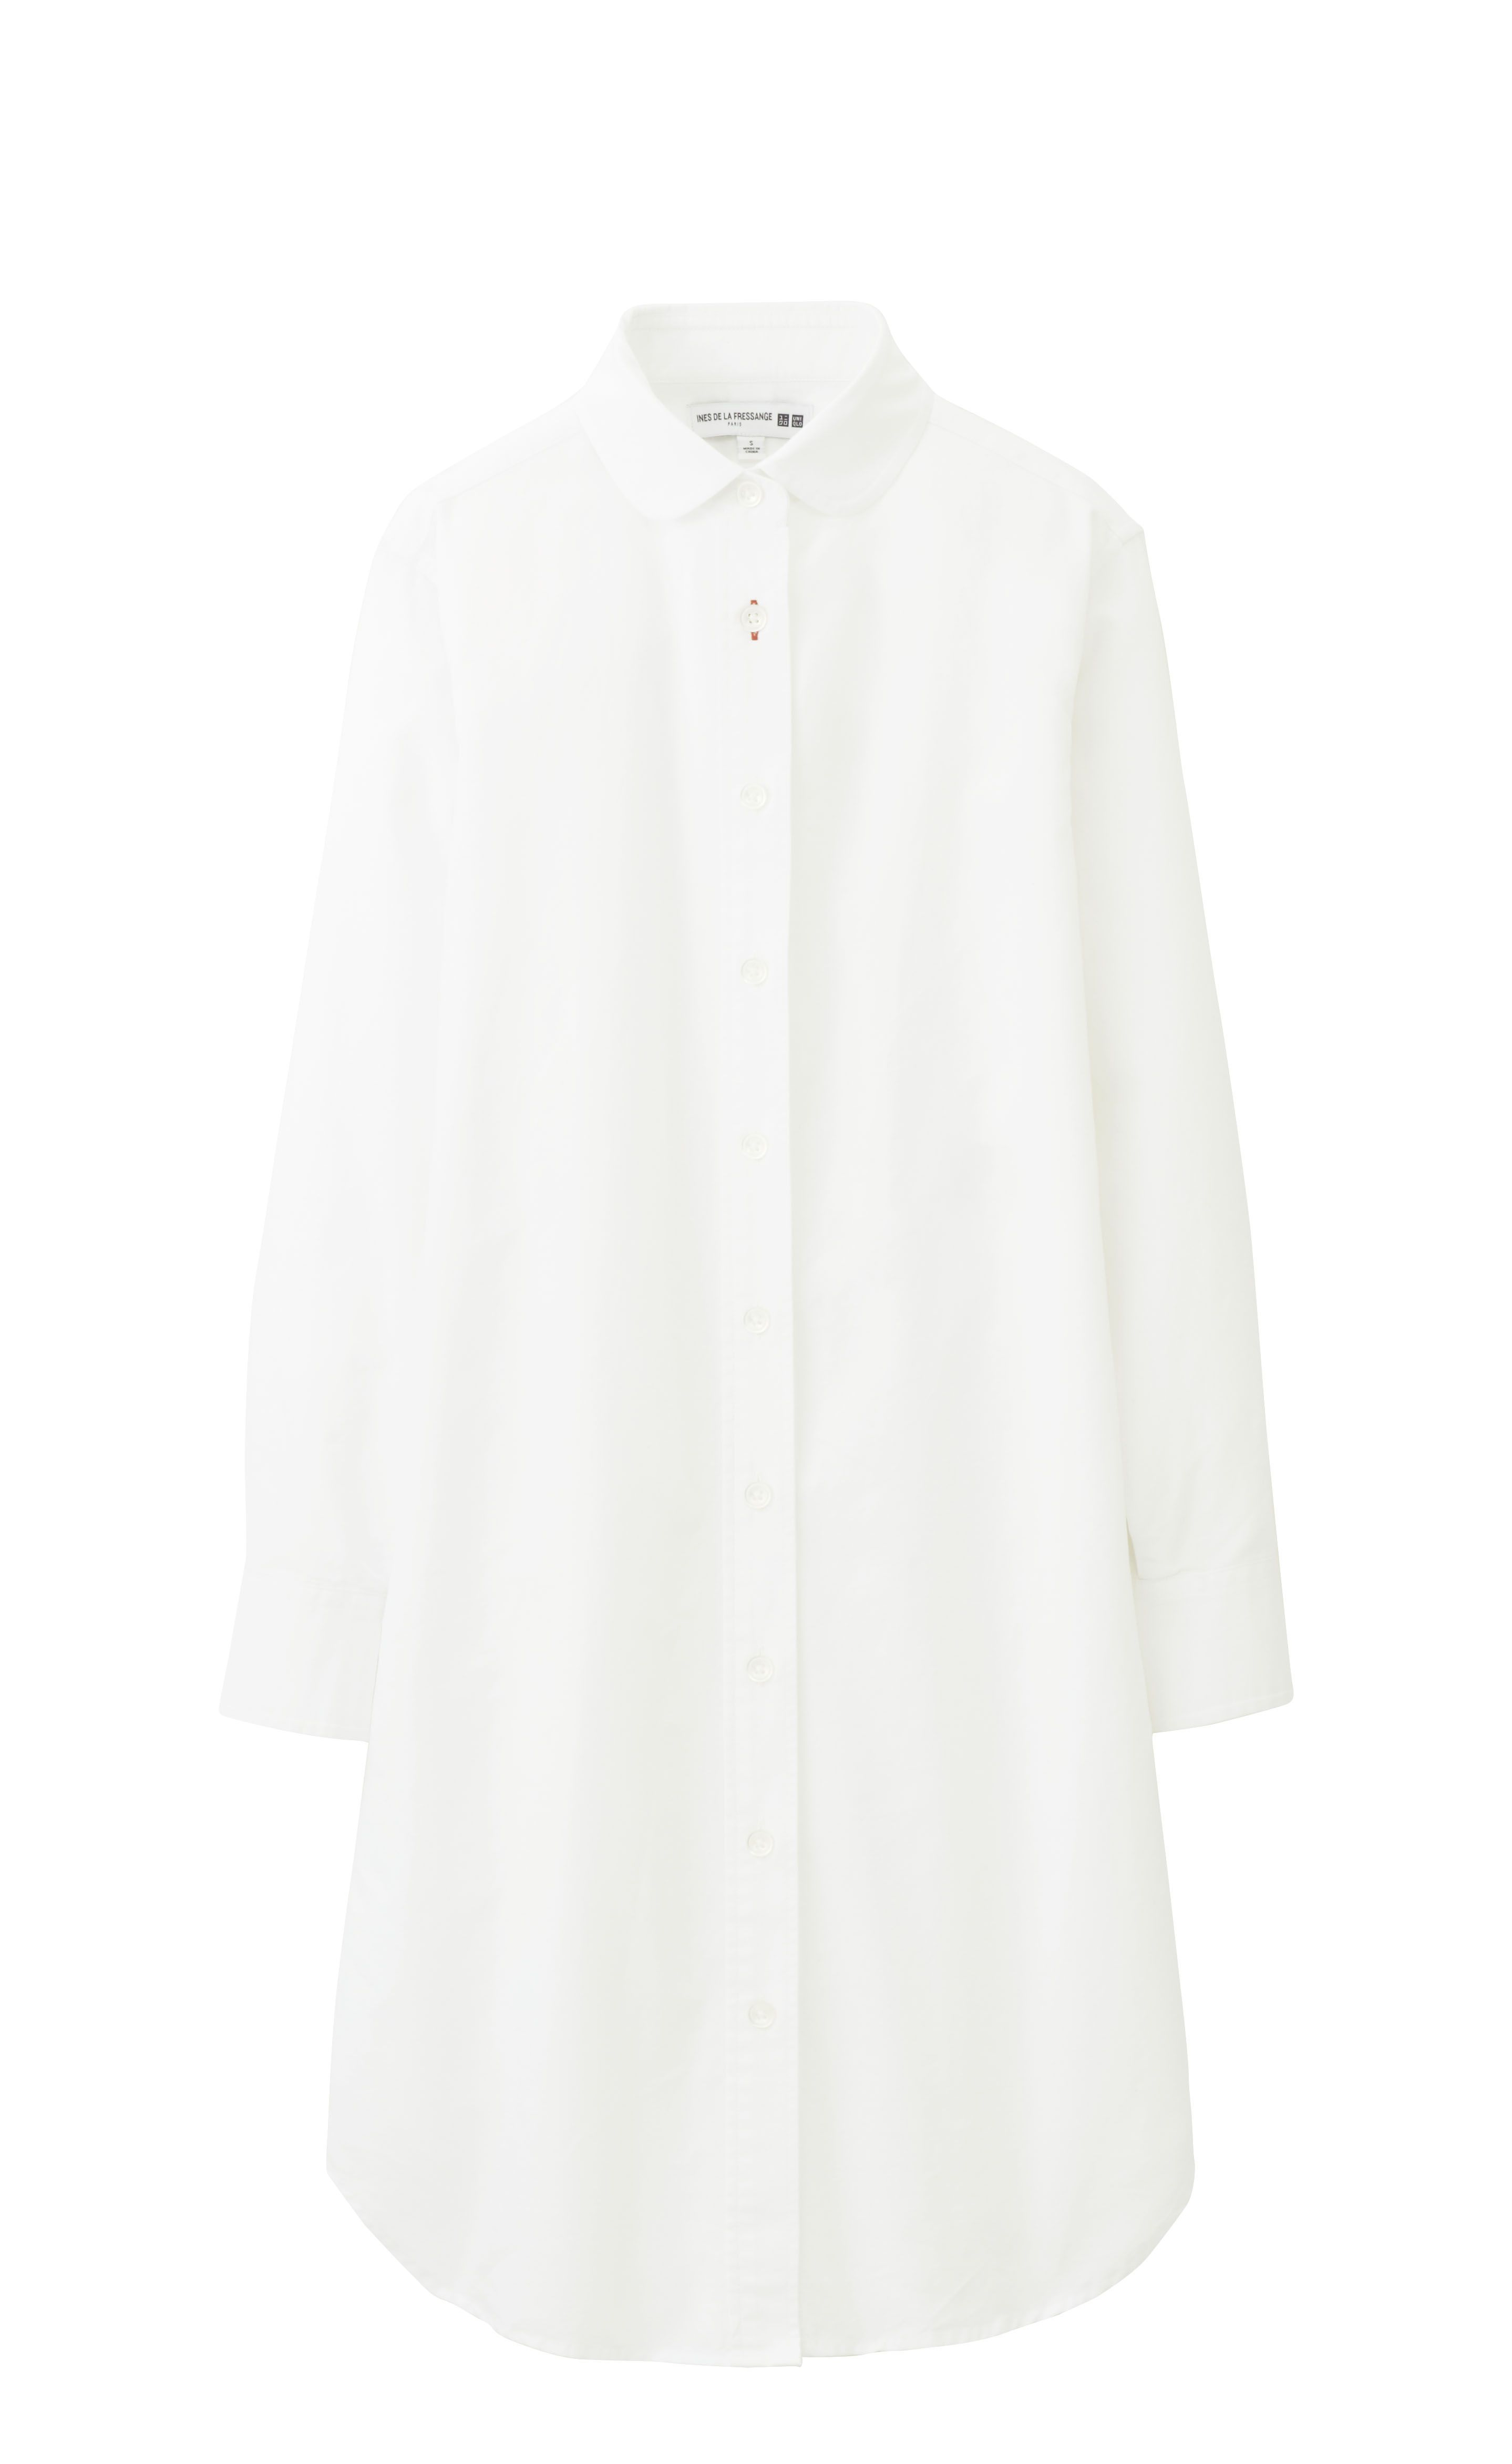 Blouse from ines de la fressangeus collection for uniqlo on sale on